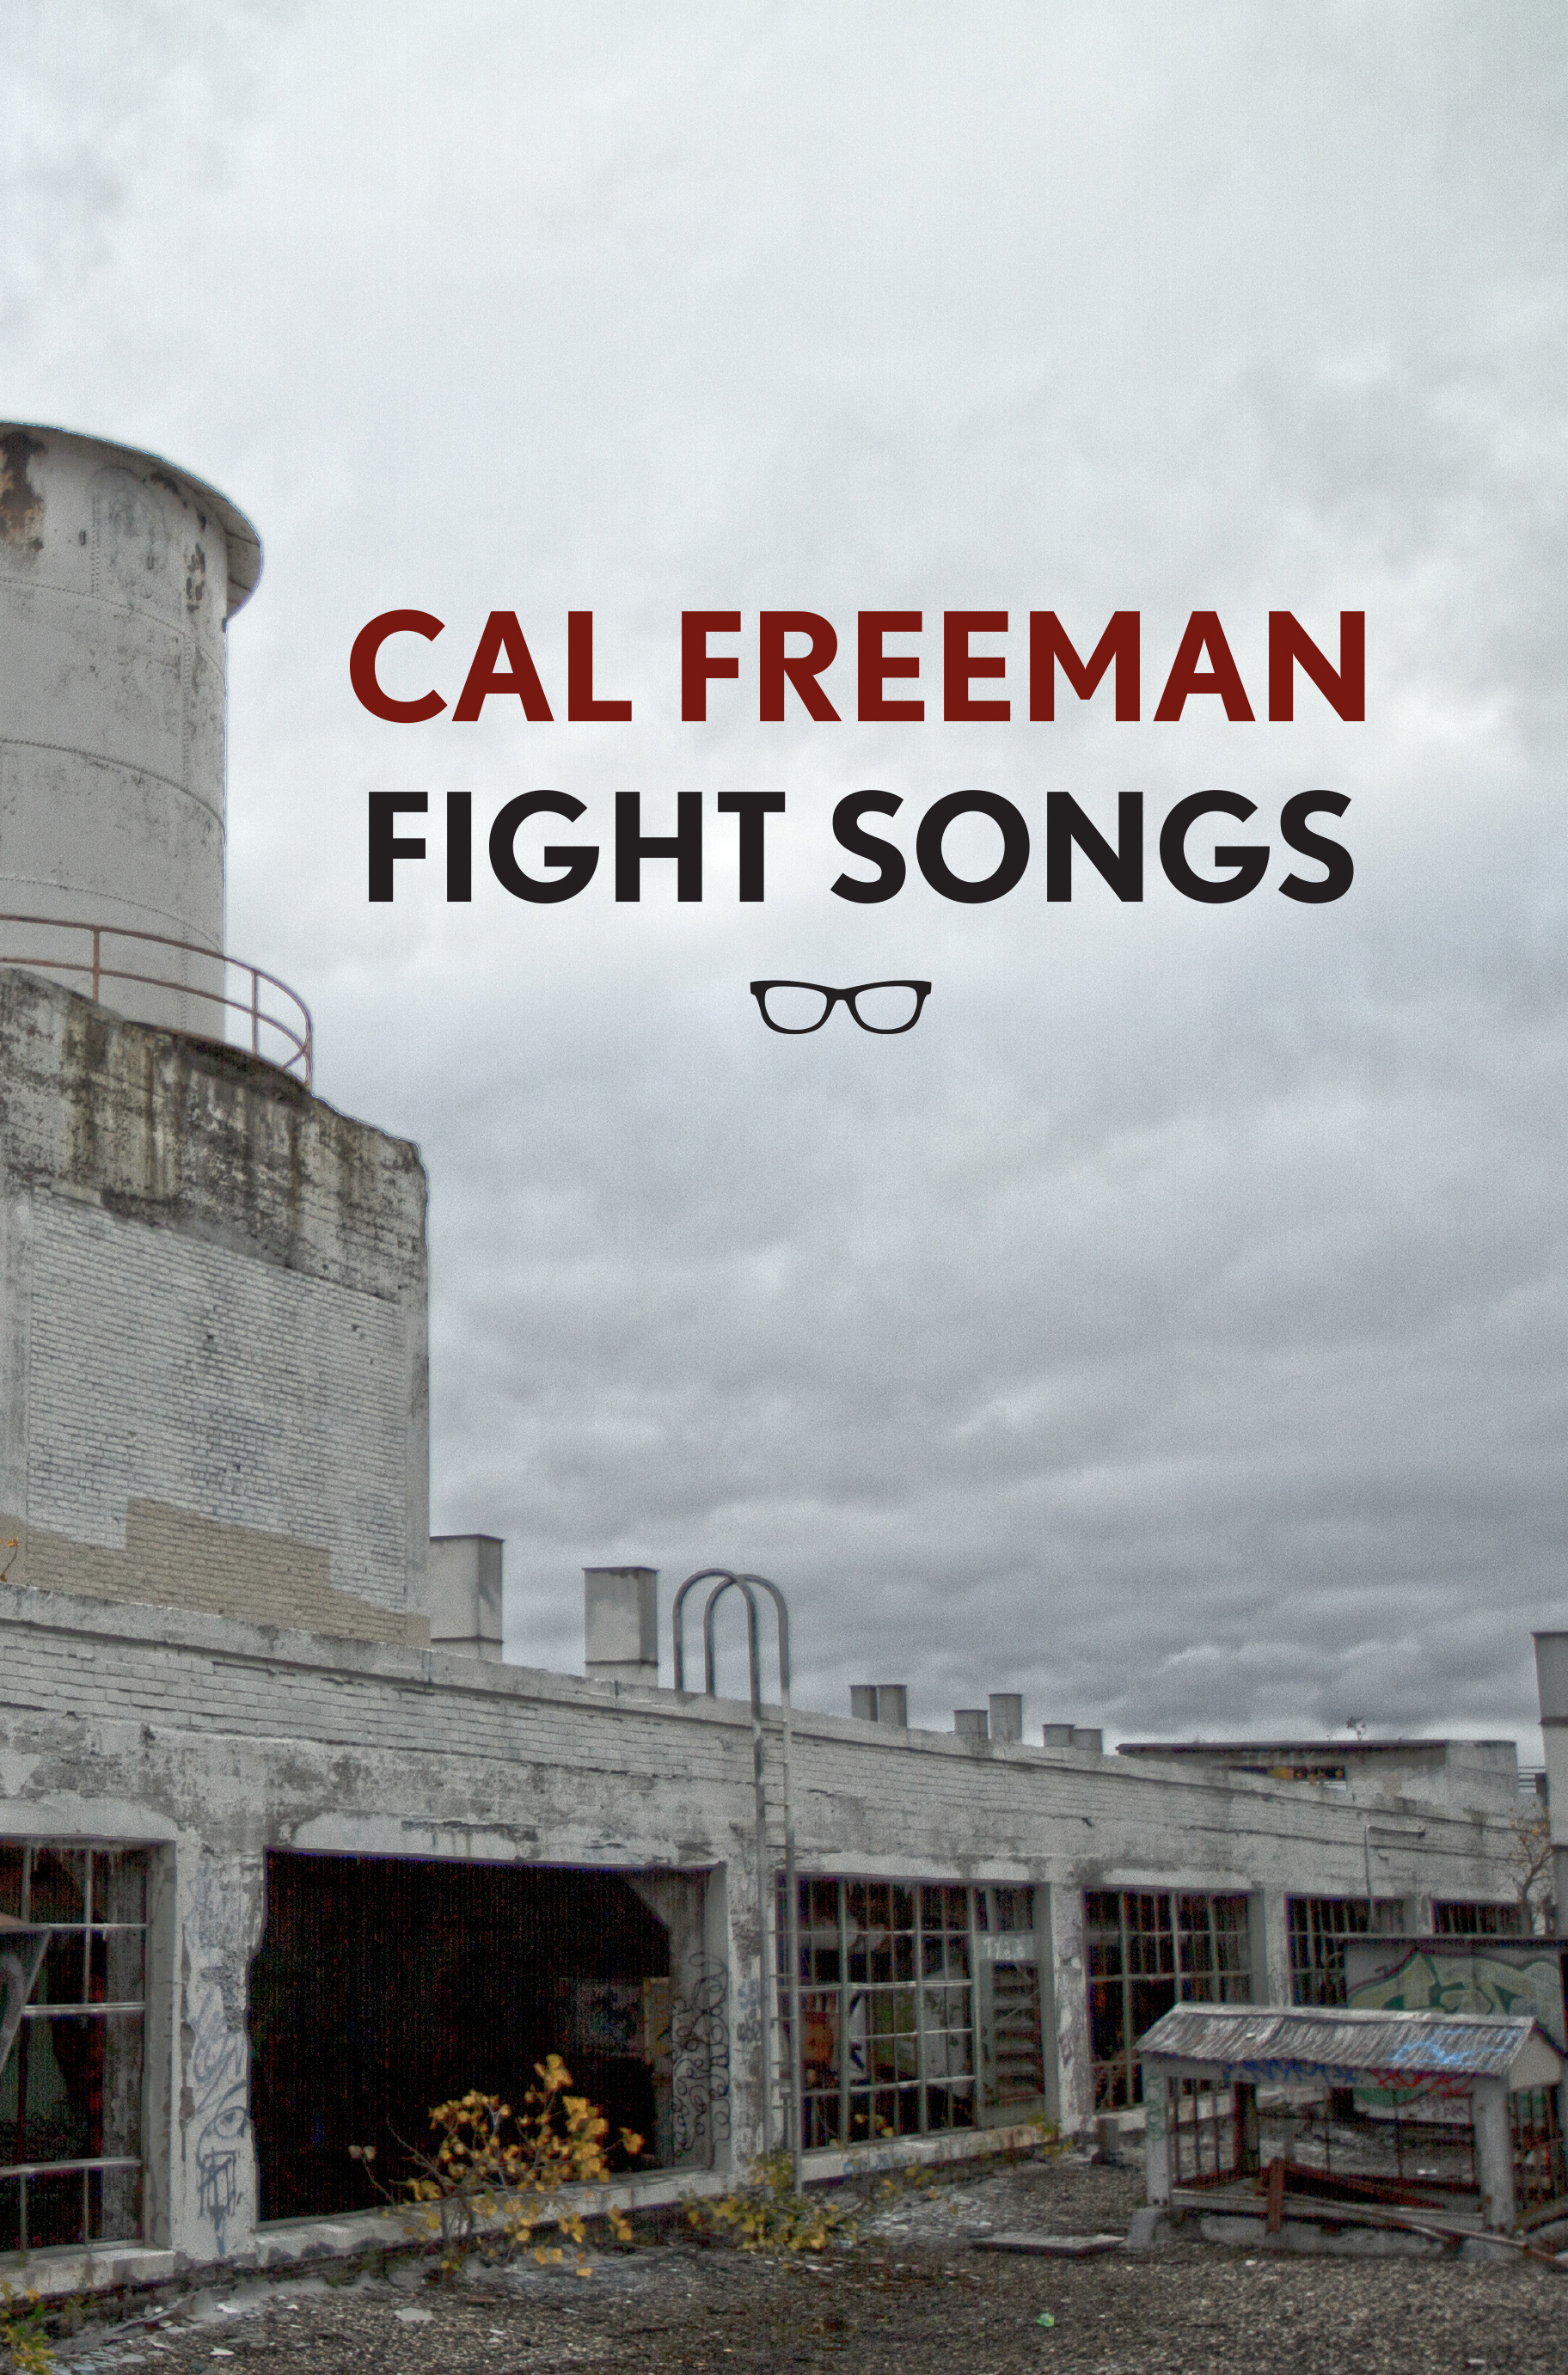 Fight Songs  by Cal Freeman   Eyewear Publishing , 84 pages, November 10, 2017